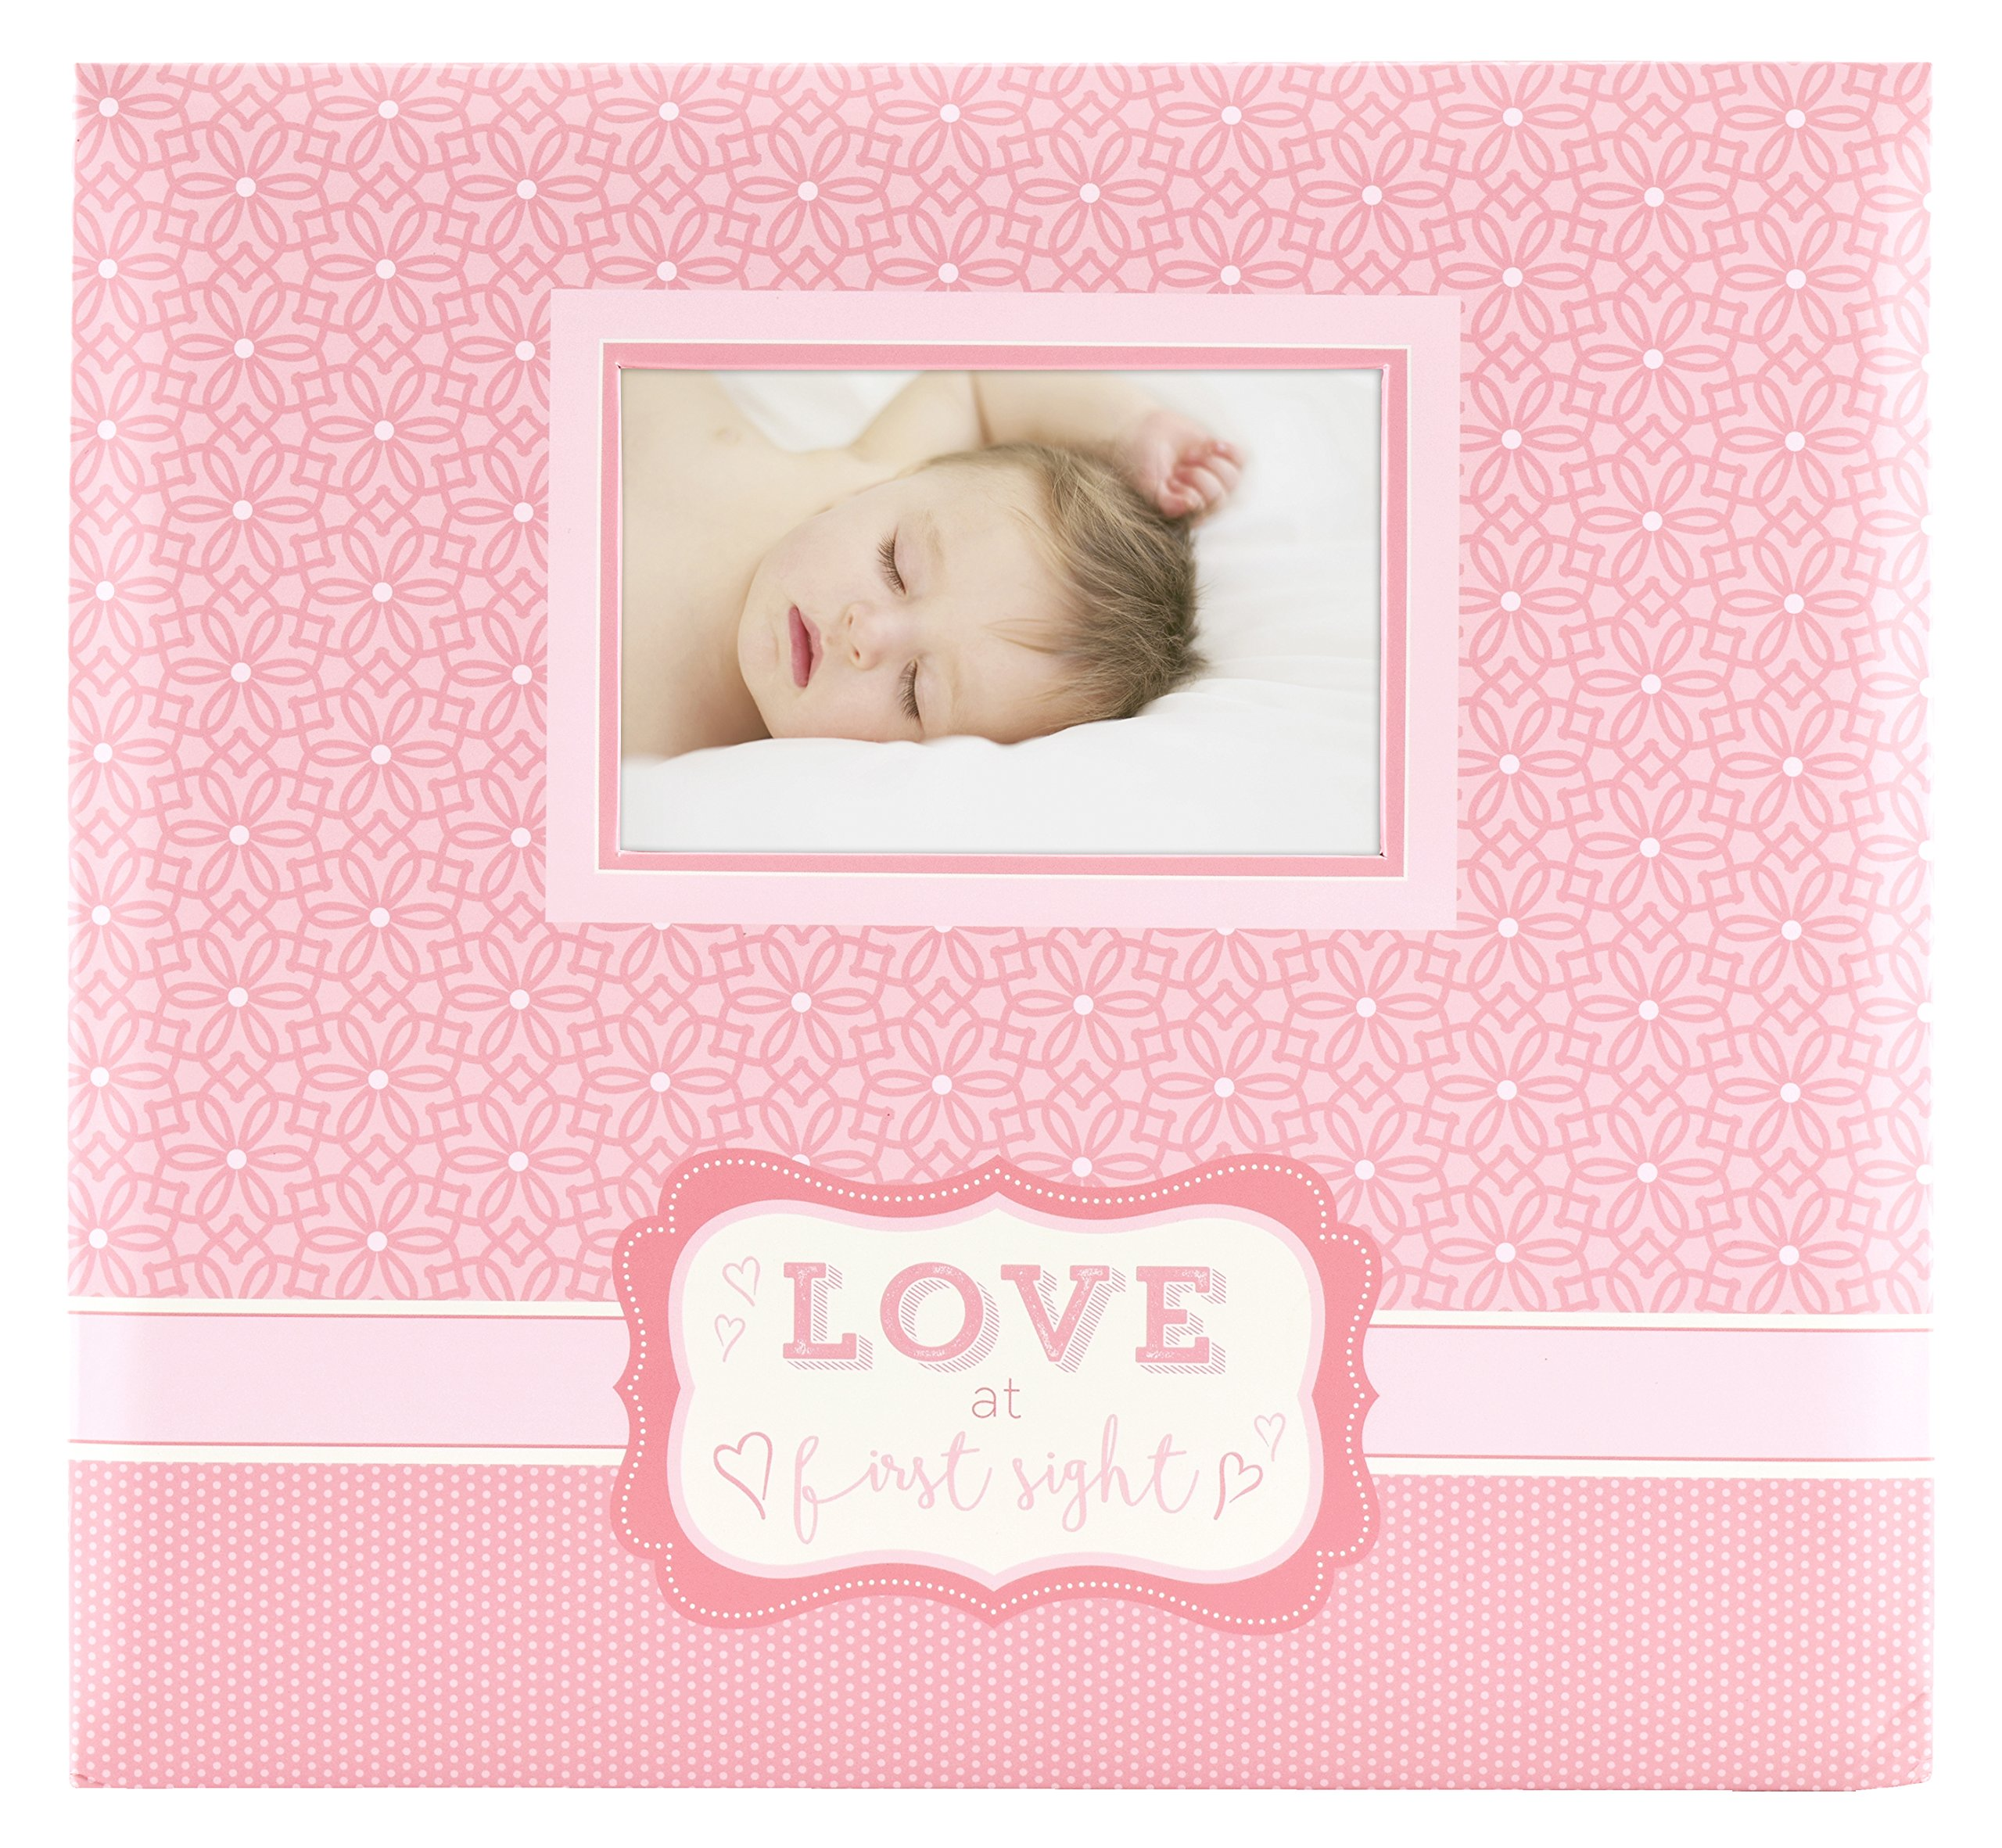 "MCS MBI 13.5x12.5 Inch ""Love at First Sight"" Baby Scrapbook Album with 12x12 Inch Pages, Pink (860126)"